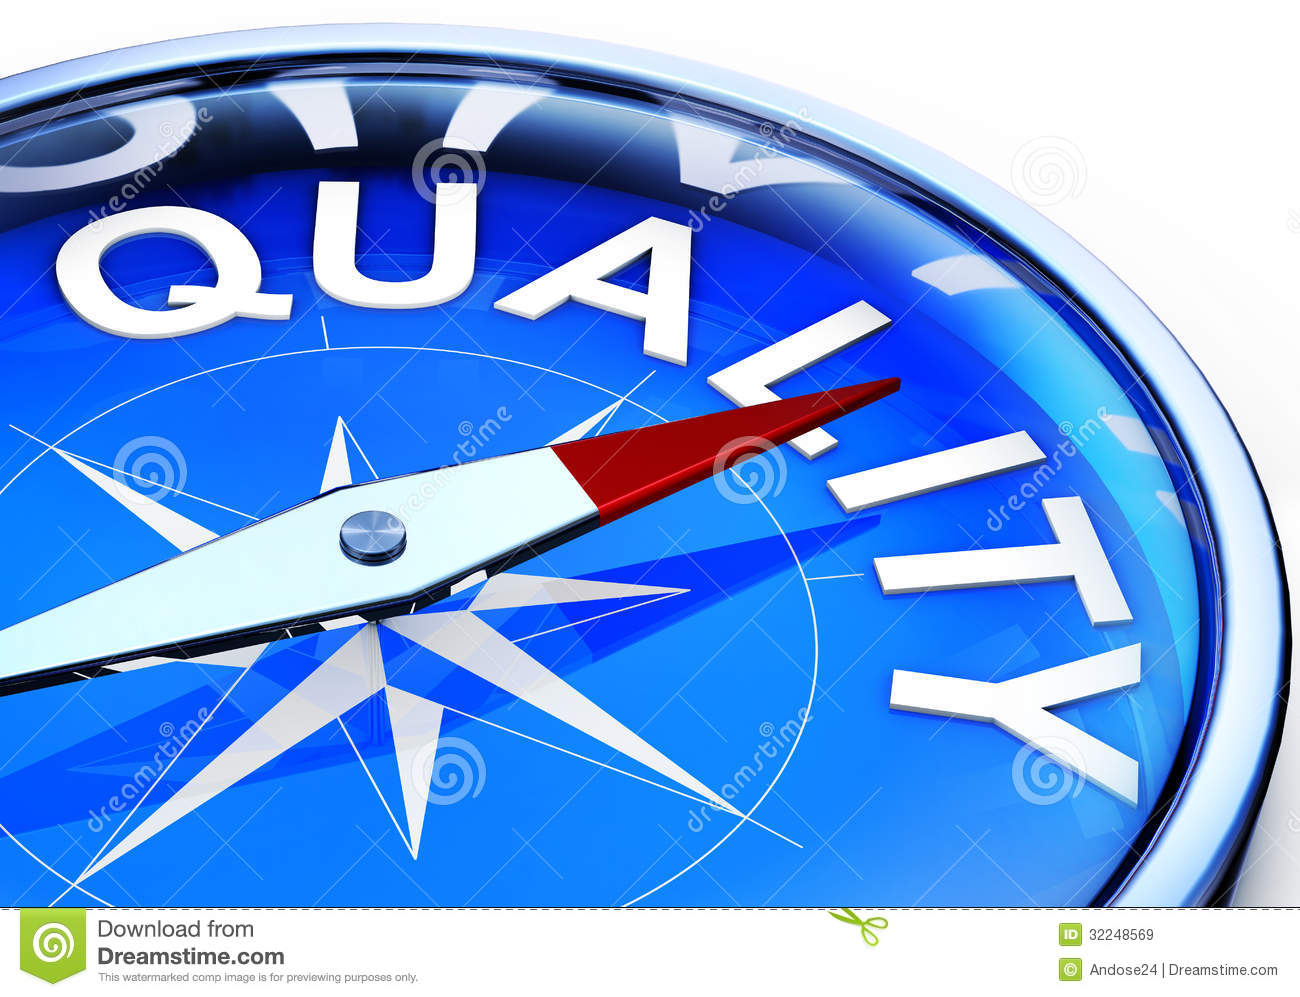 Quality Royalty Free Stock Images - Image: 32248569: dreamstime.com/royalty-free-stock-images-quality-d-illustration...